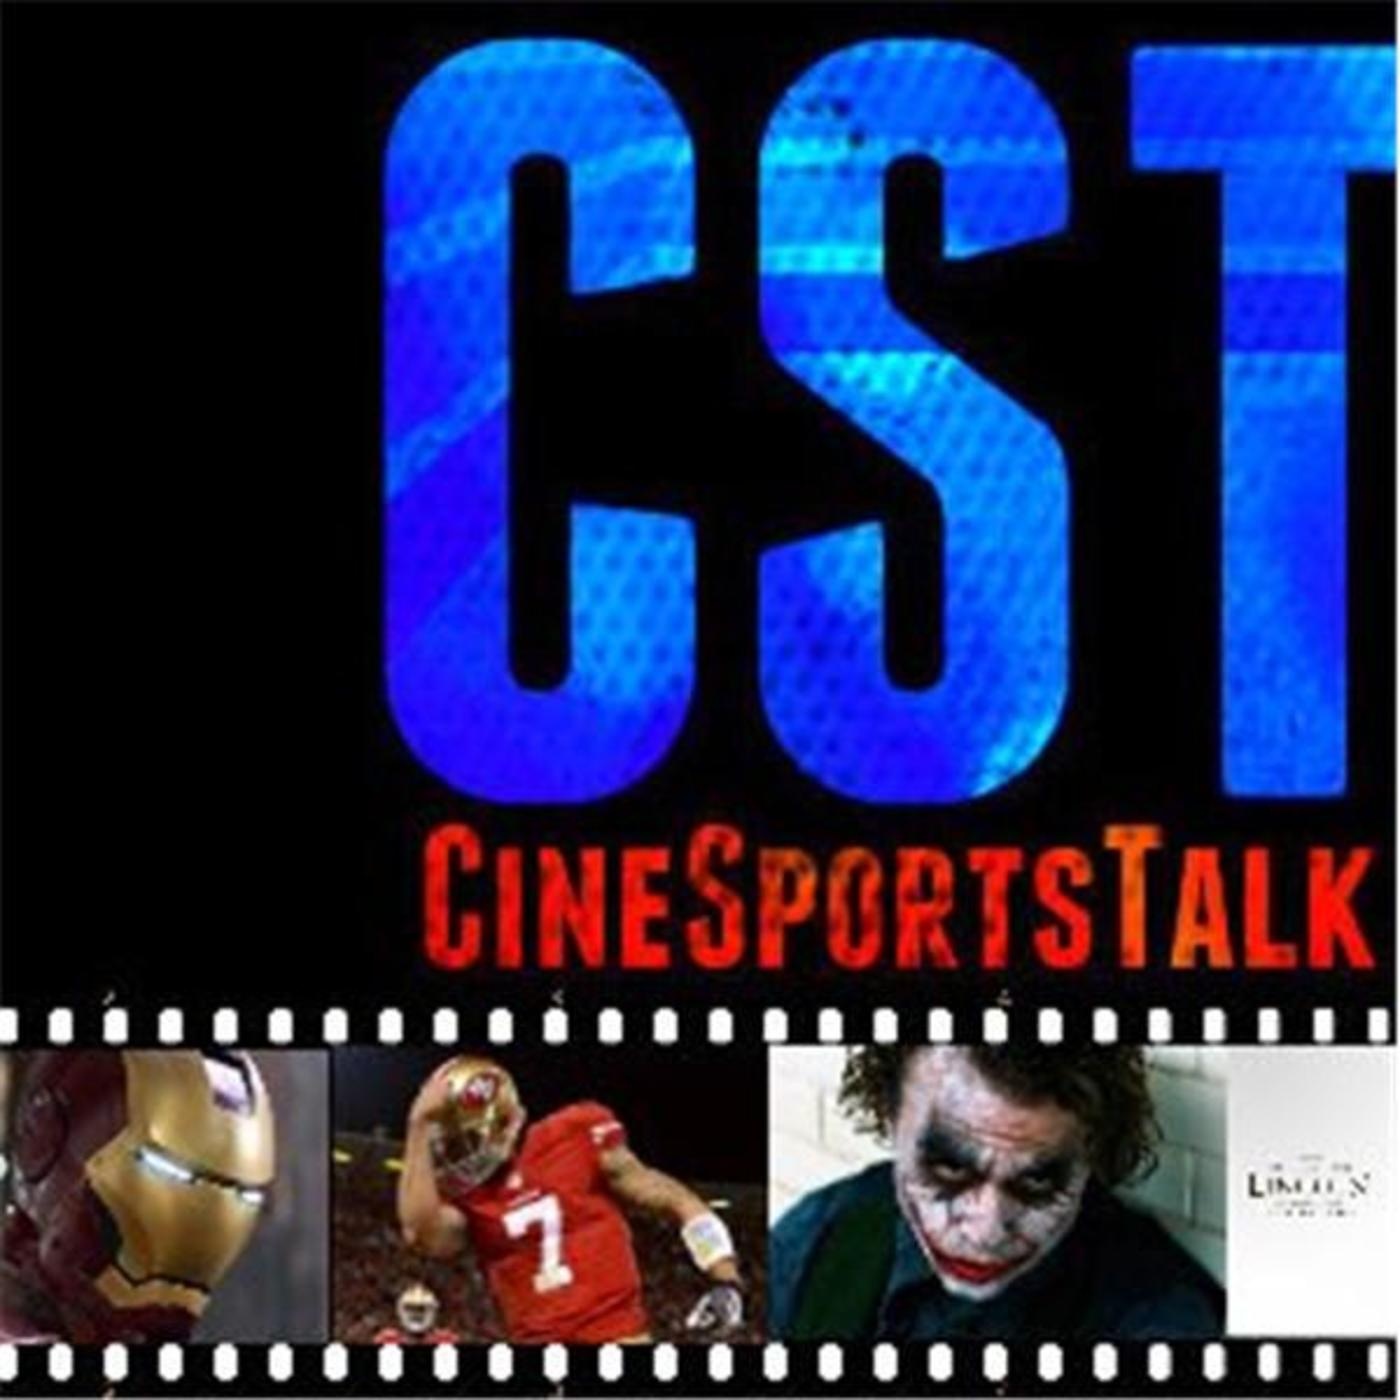 CineSportsTalk